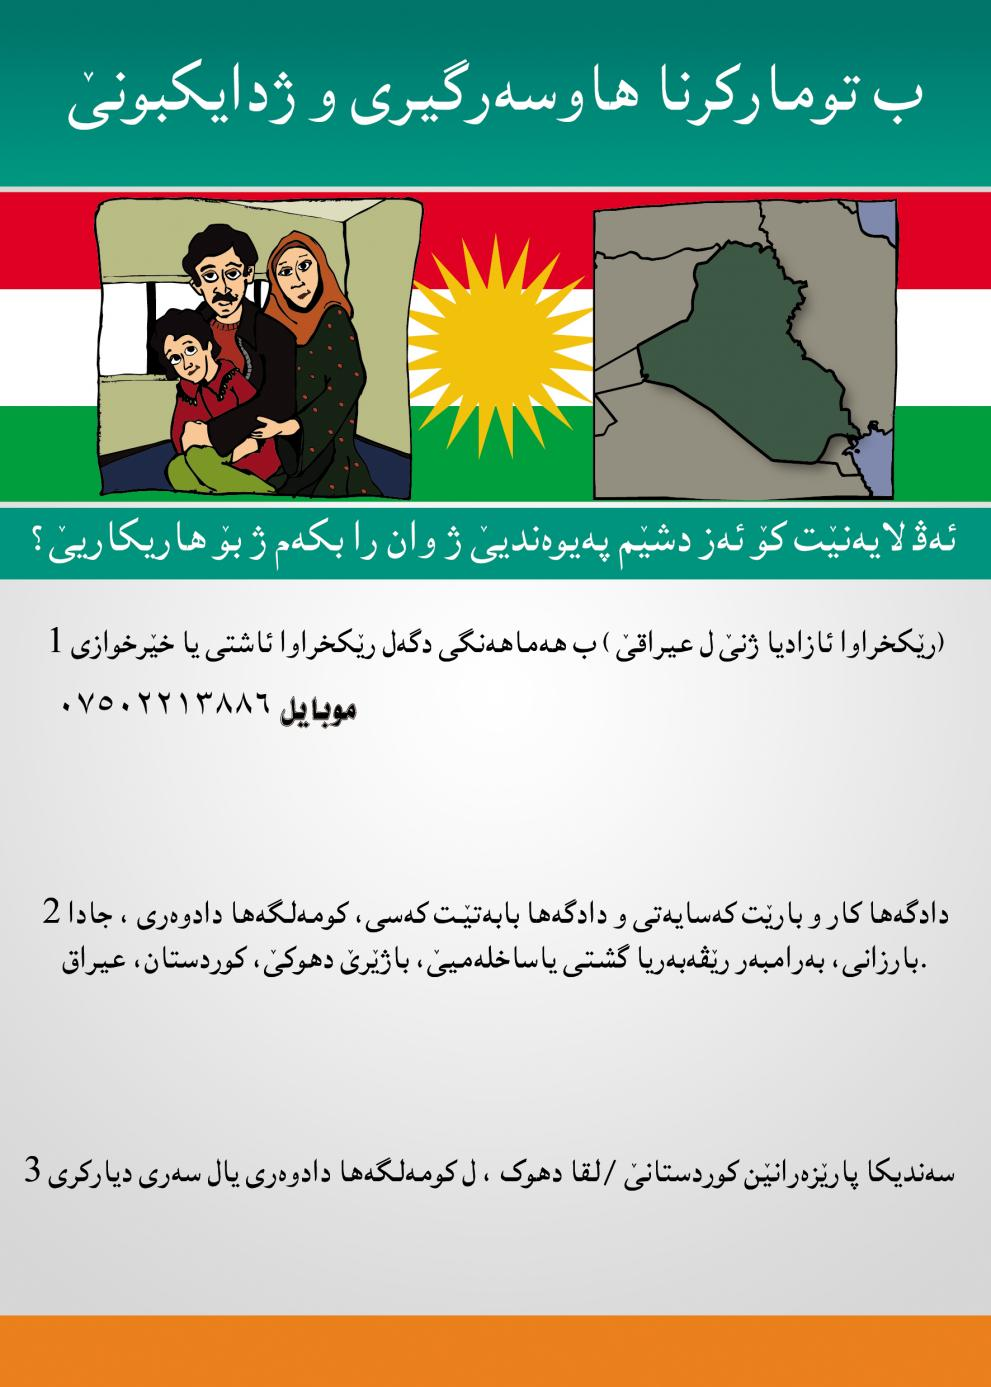 Know-Your-Rights Comic Strip in Kurdish